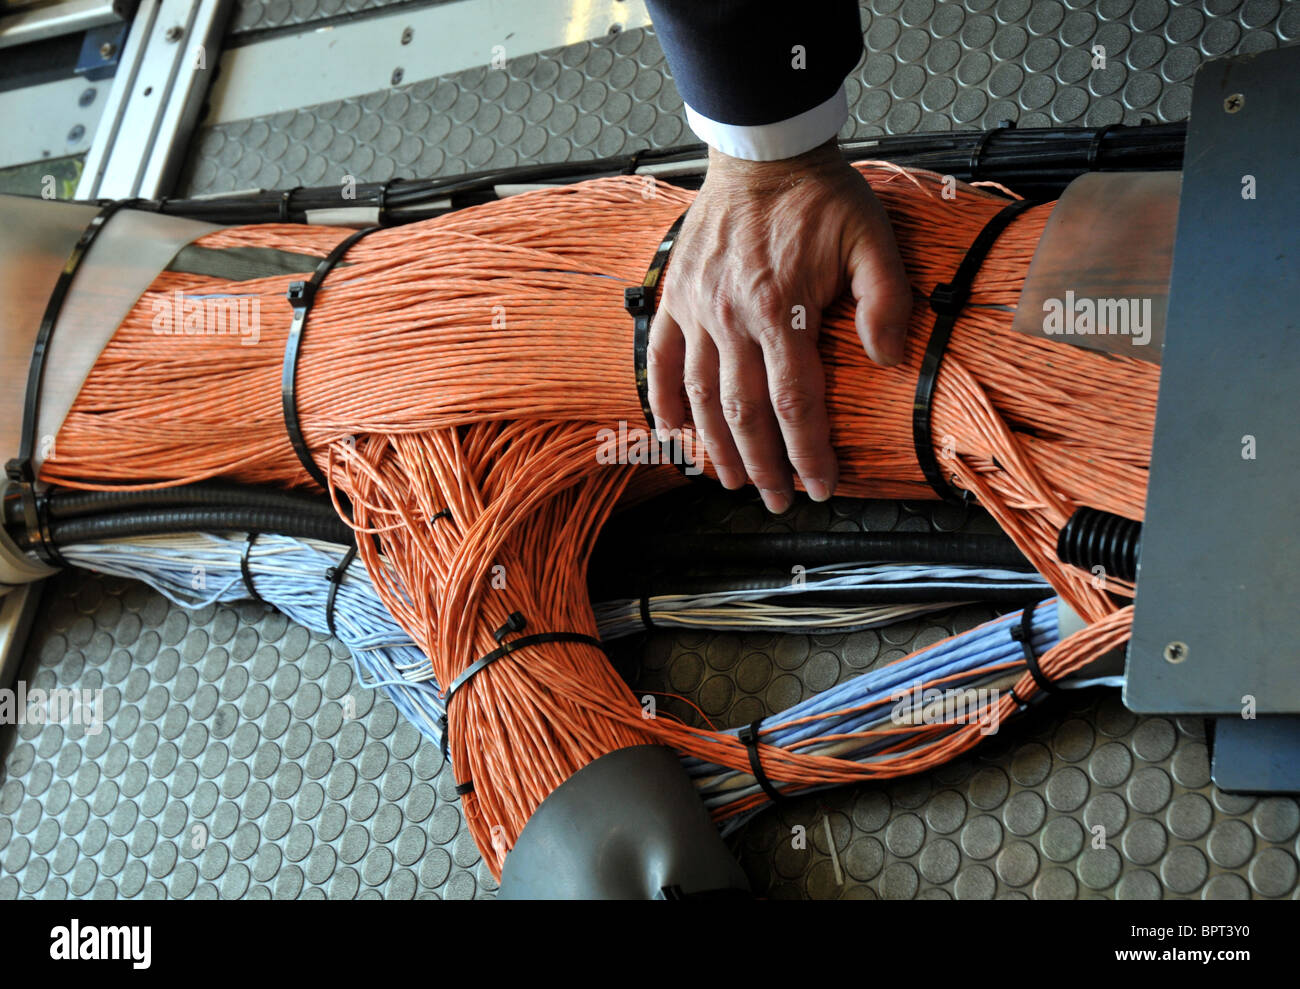 Wiring In The Airbus A380 Stock Photo  Royalty Free Image  31262756